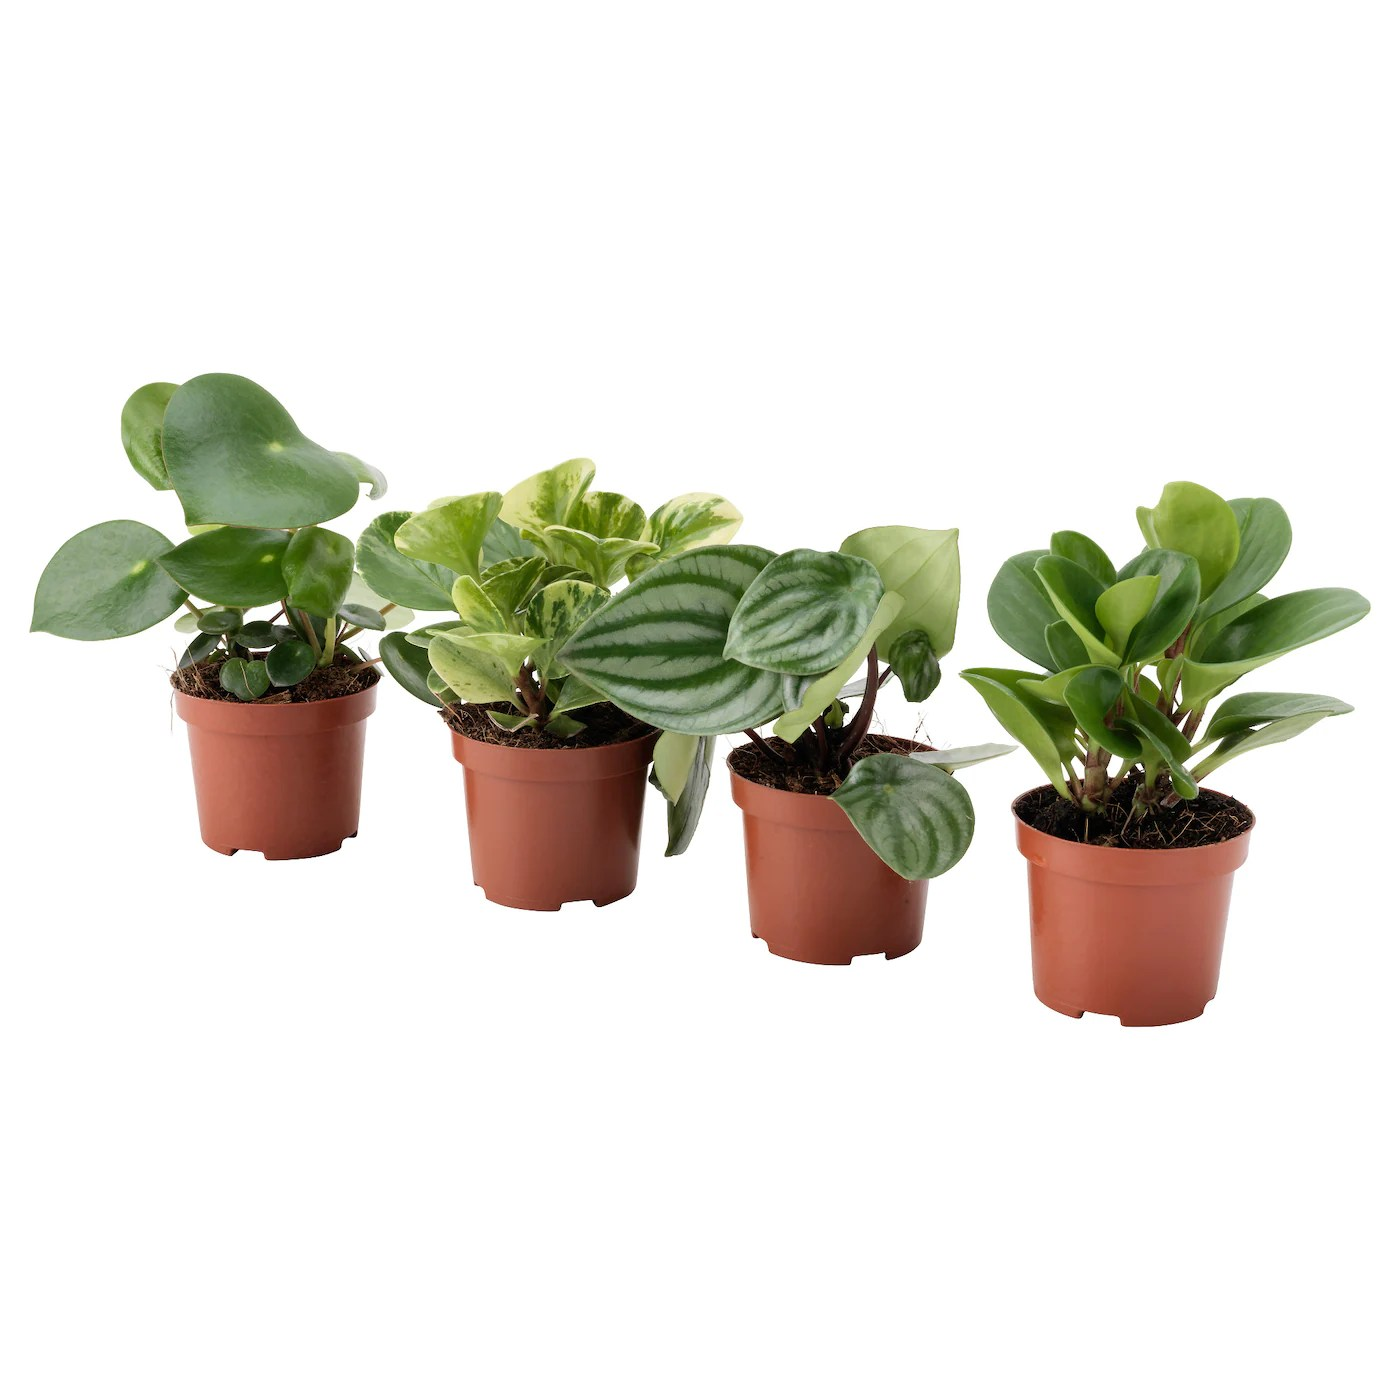 Ikea Potgrond Peperomia Potted Plant Assorted 9 Cm Ikea